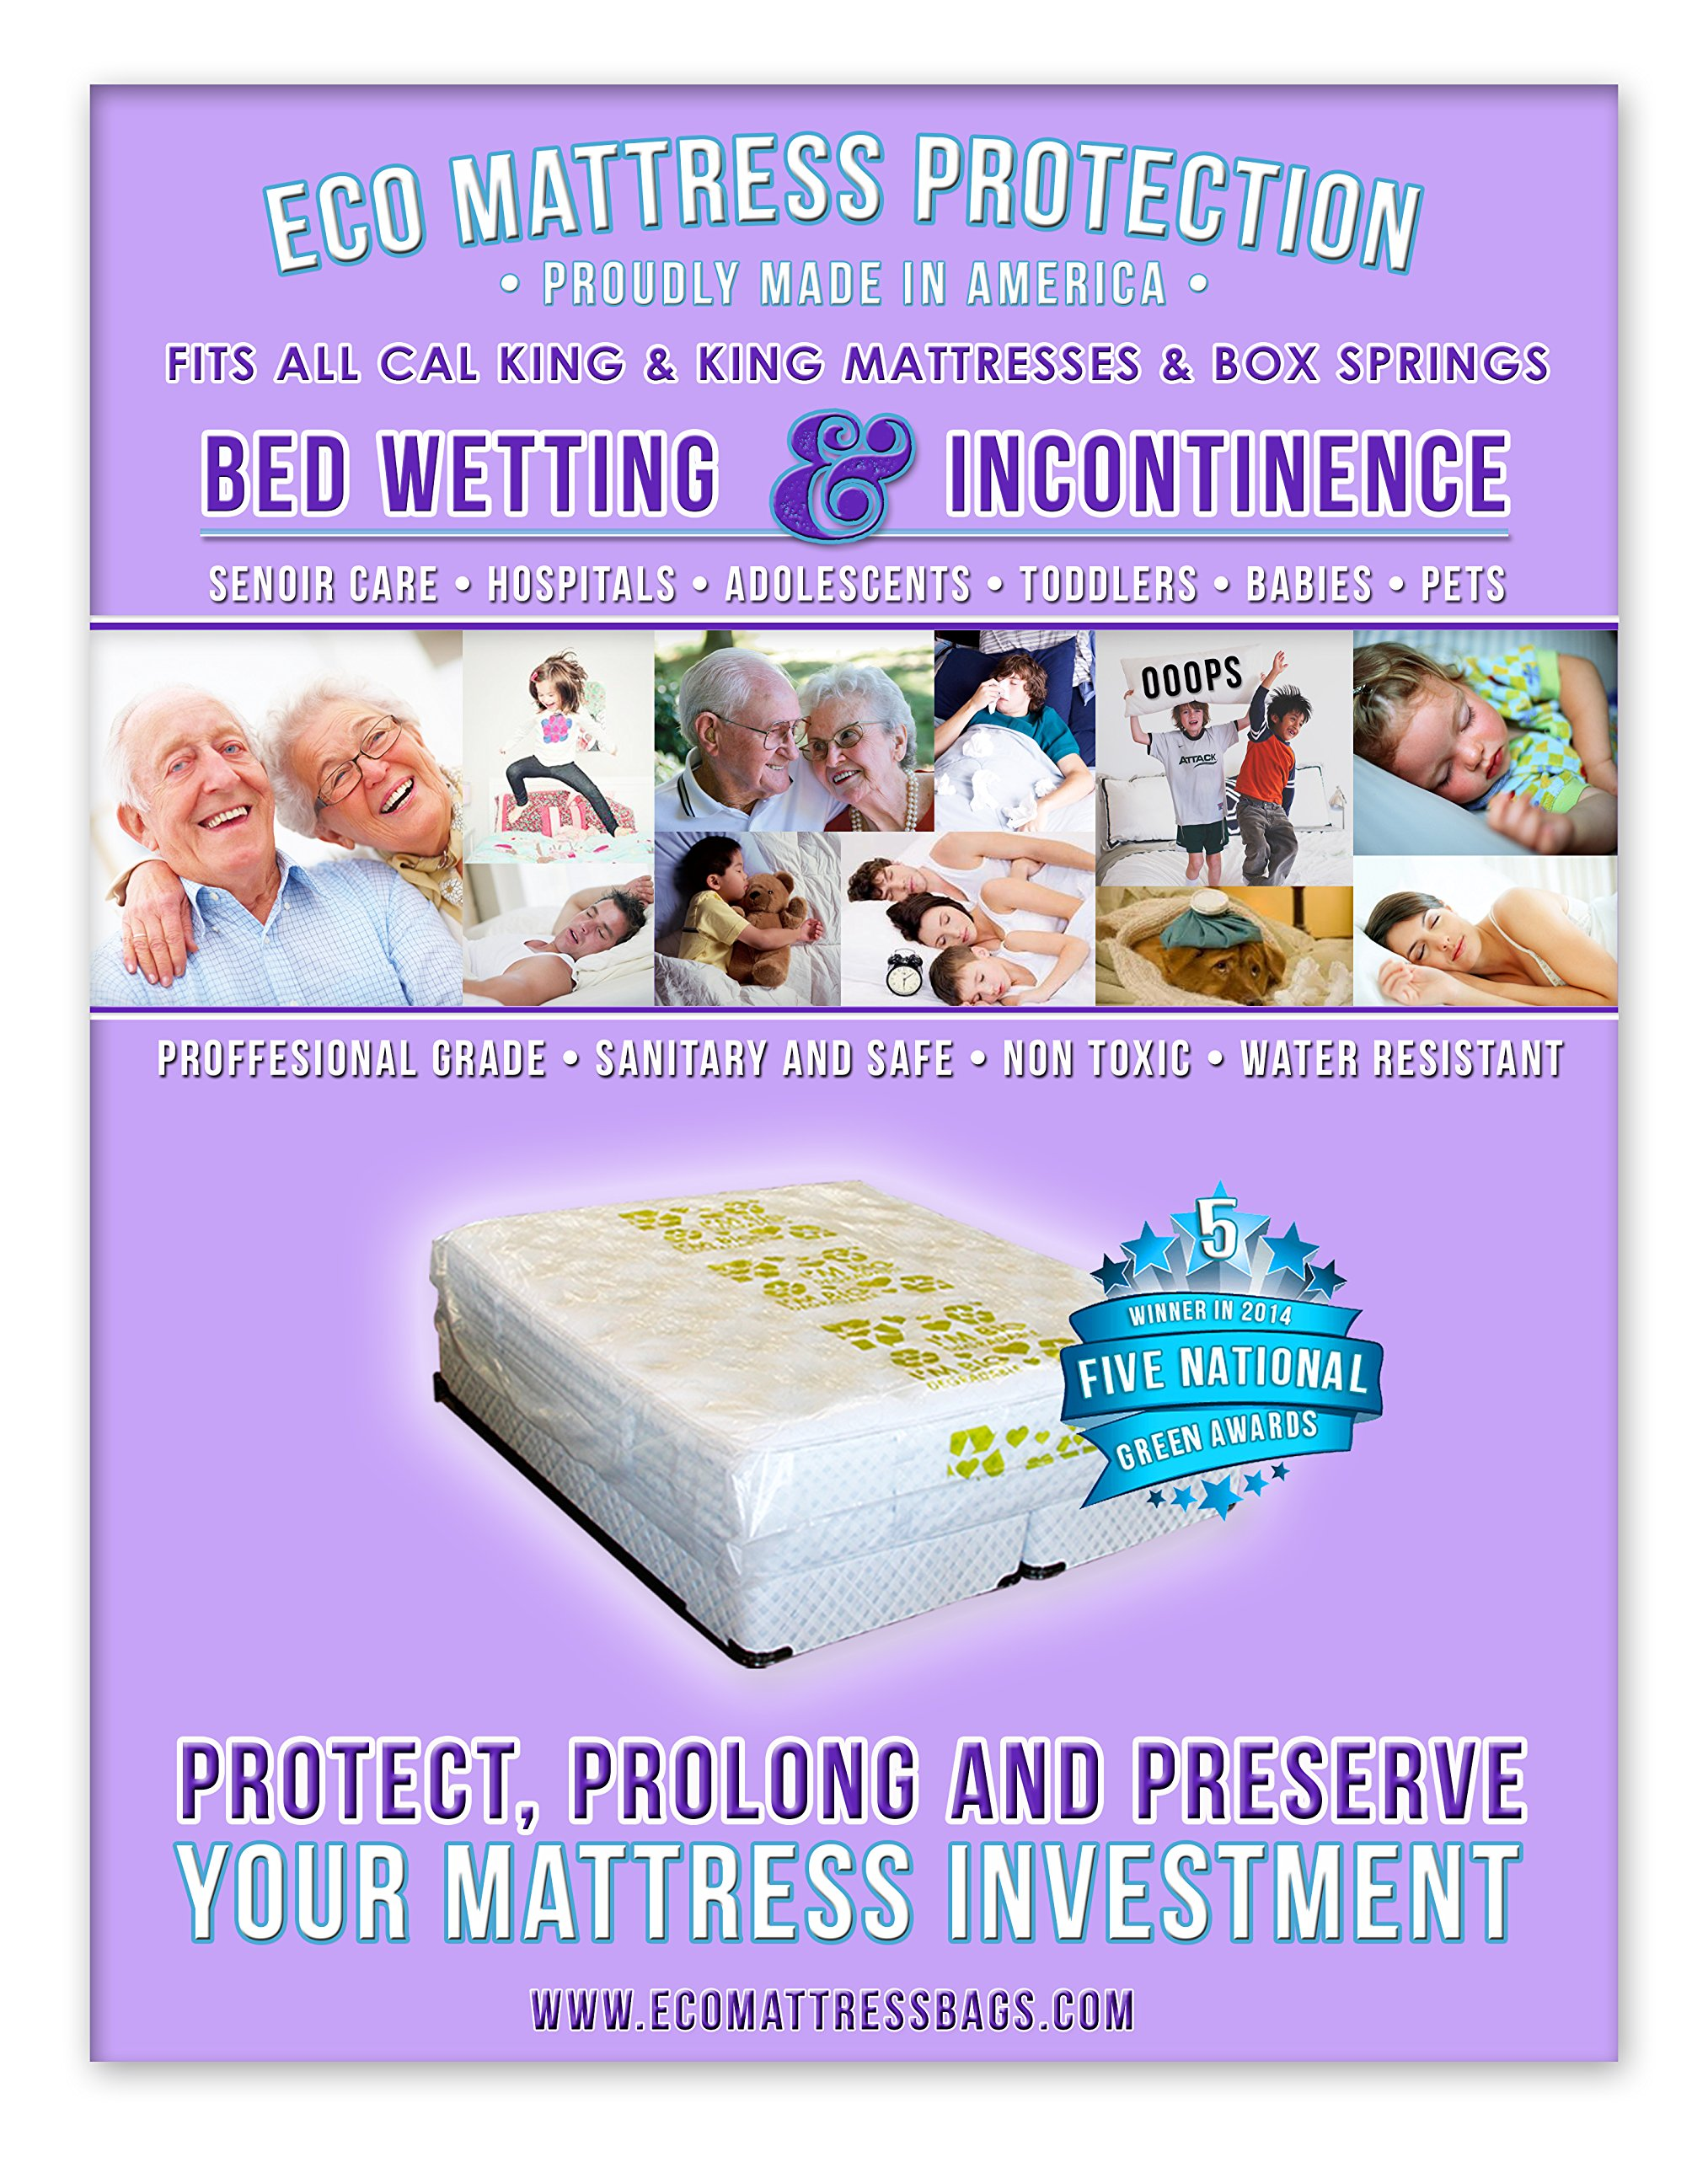 1 Cal King or King Size Mattress Protector for Bed Wetting and Incontinence. Fits All Cal King and King Size Mattresses. Compatible with All Pillow Tops and Box Springs. Professional Hospital/ Medical Grade, 3 Mil, Heavy Duty, Non-Toxic, Hypo-Allergenic M